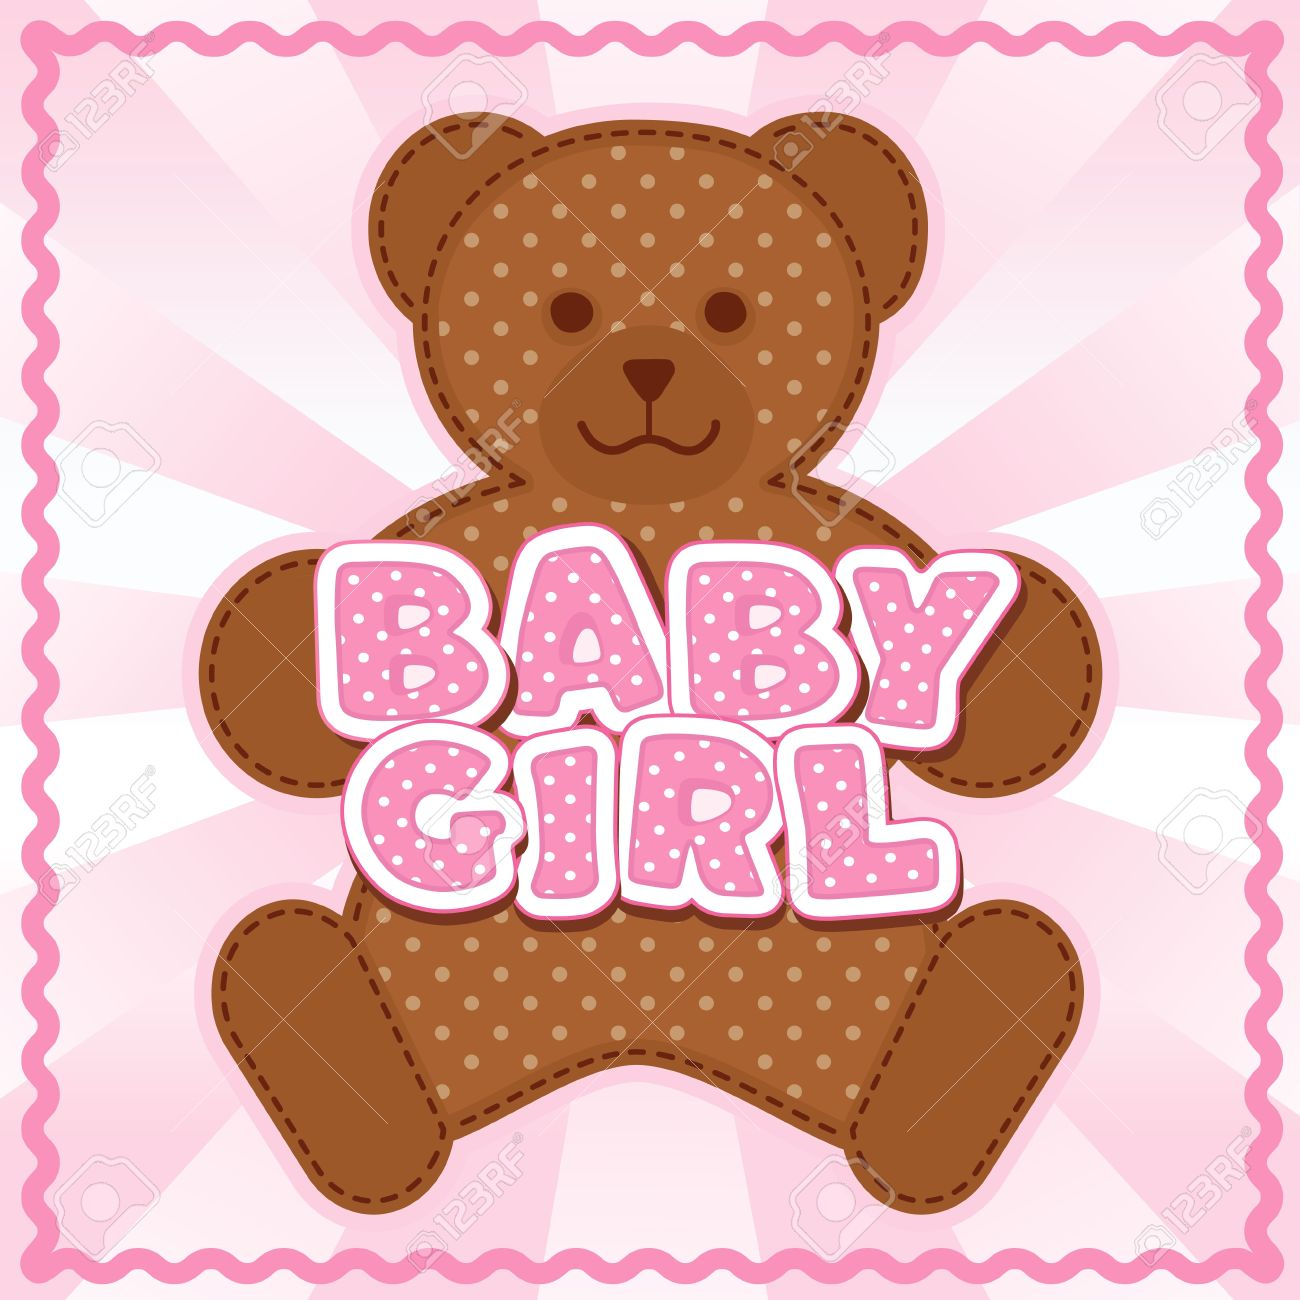 Baby girl alphabet clipart graphic library Baby girl alphabet clipart - ClipartFest graphic library